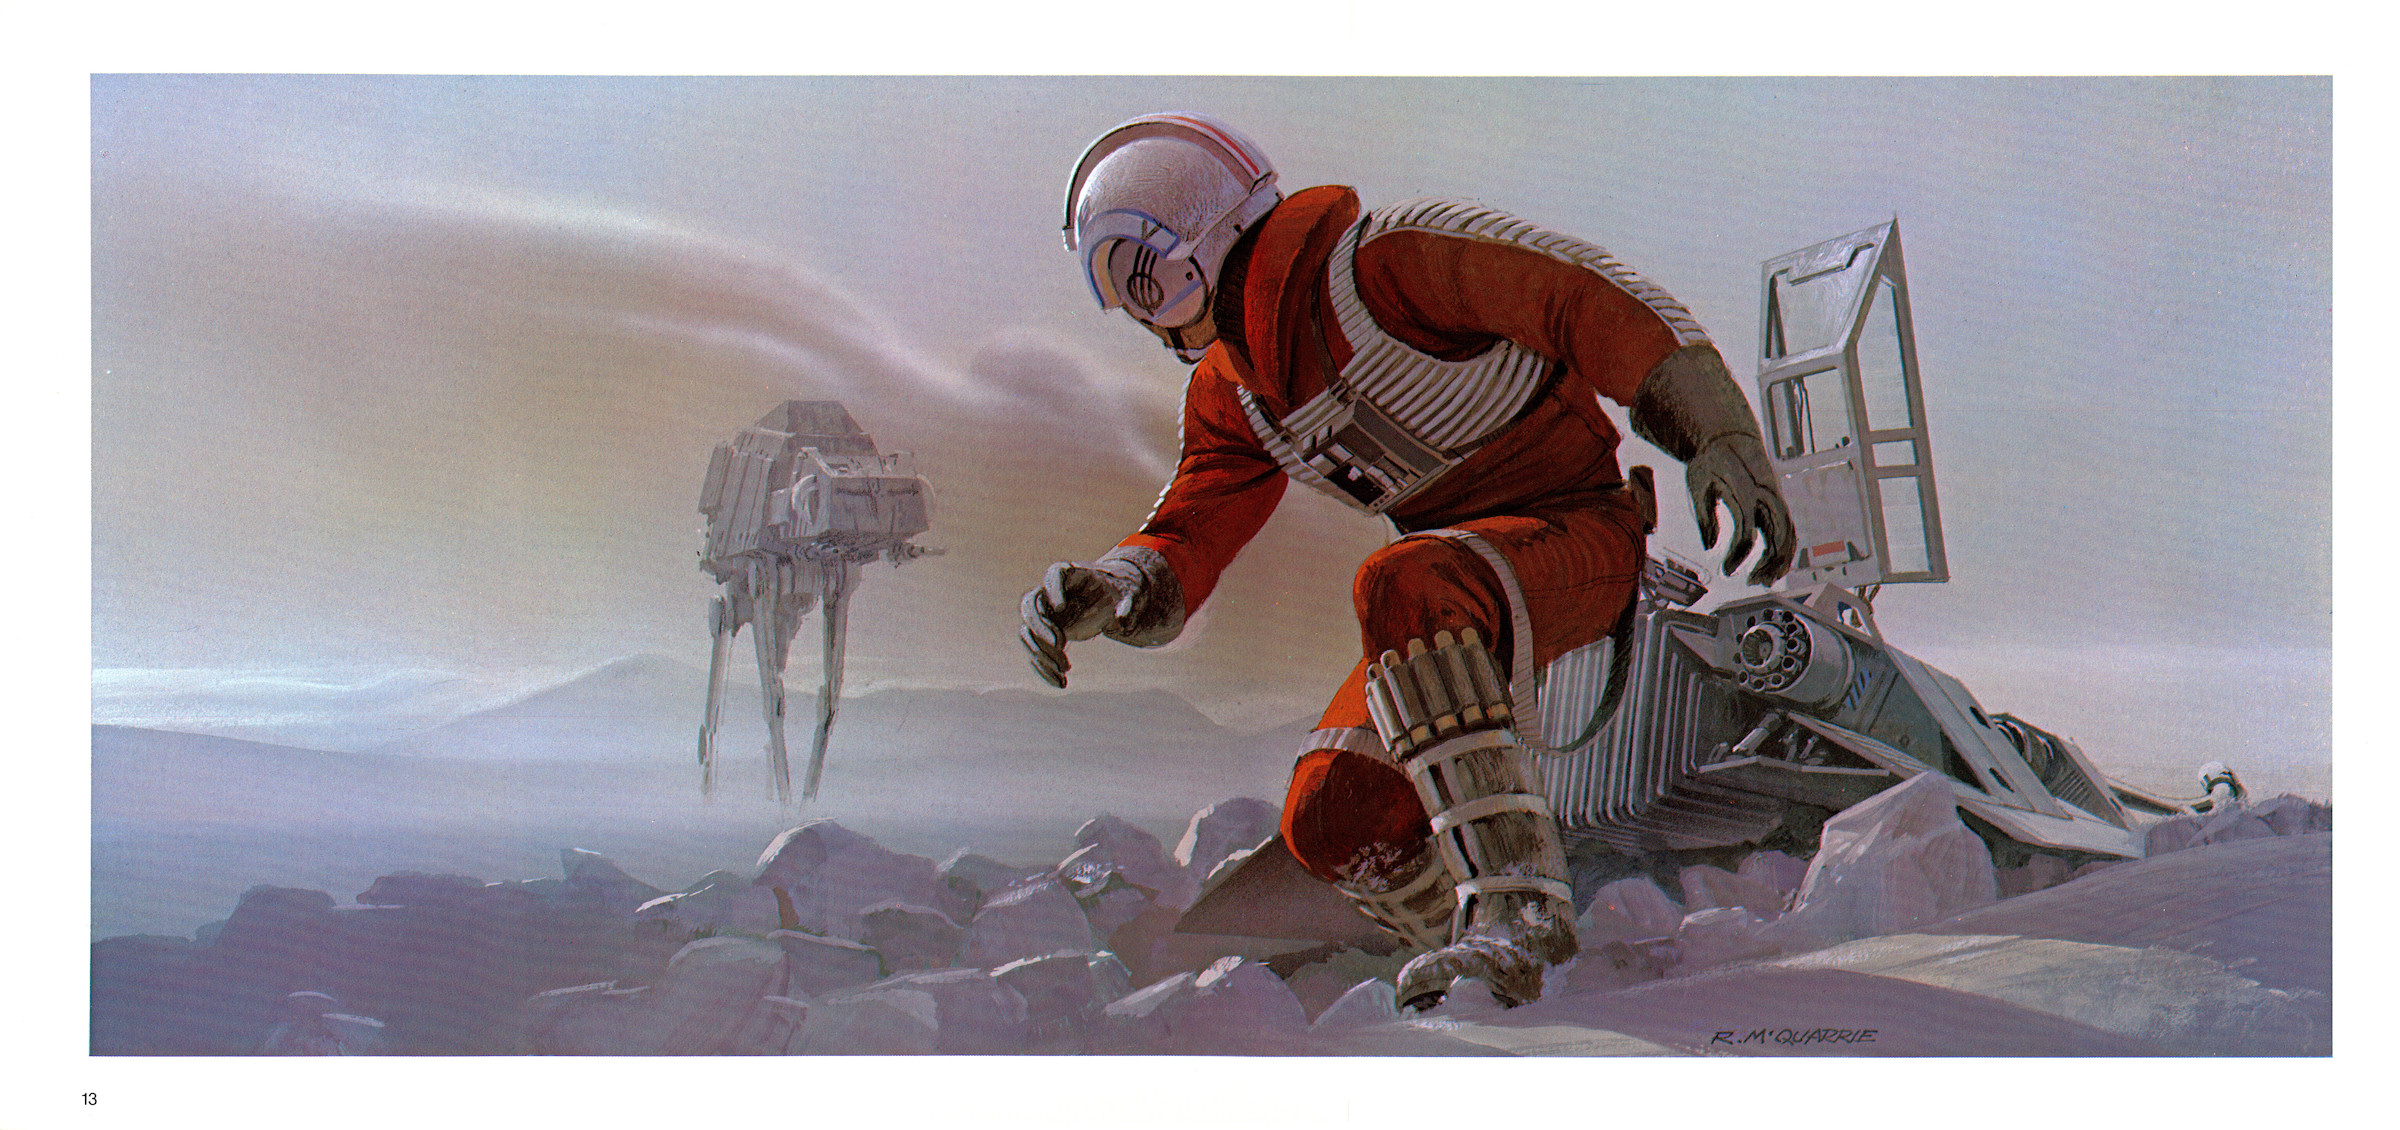 Star Wars Luke Skywalker Hoth Snow Speeder Ralph McQuarrie wallpaper 2400x1130